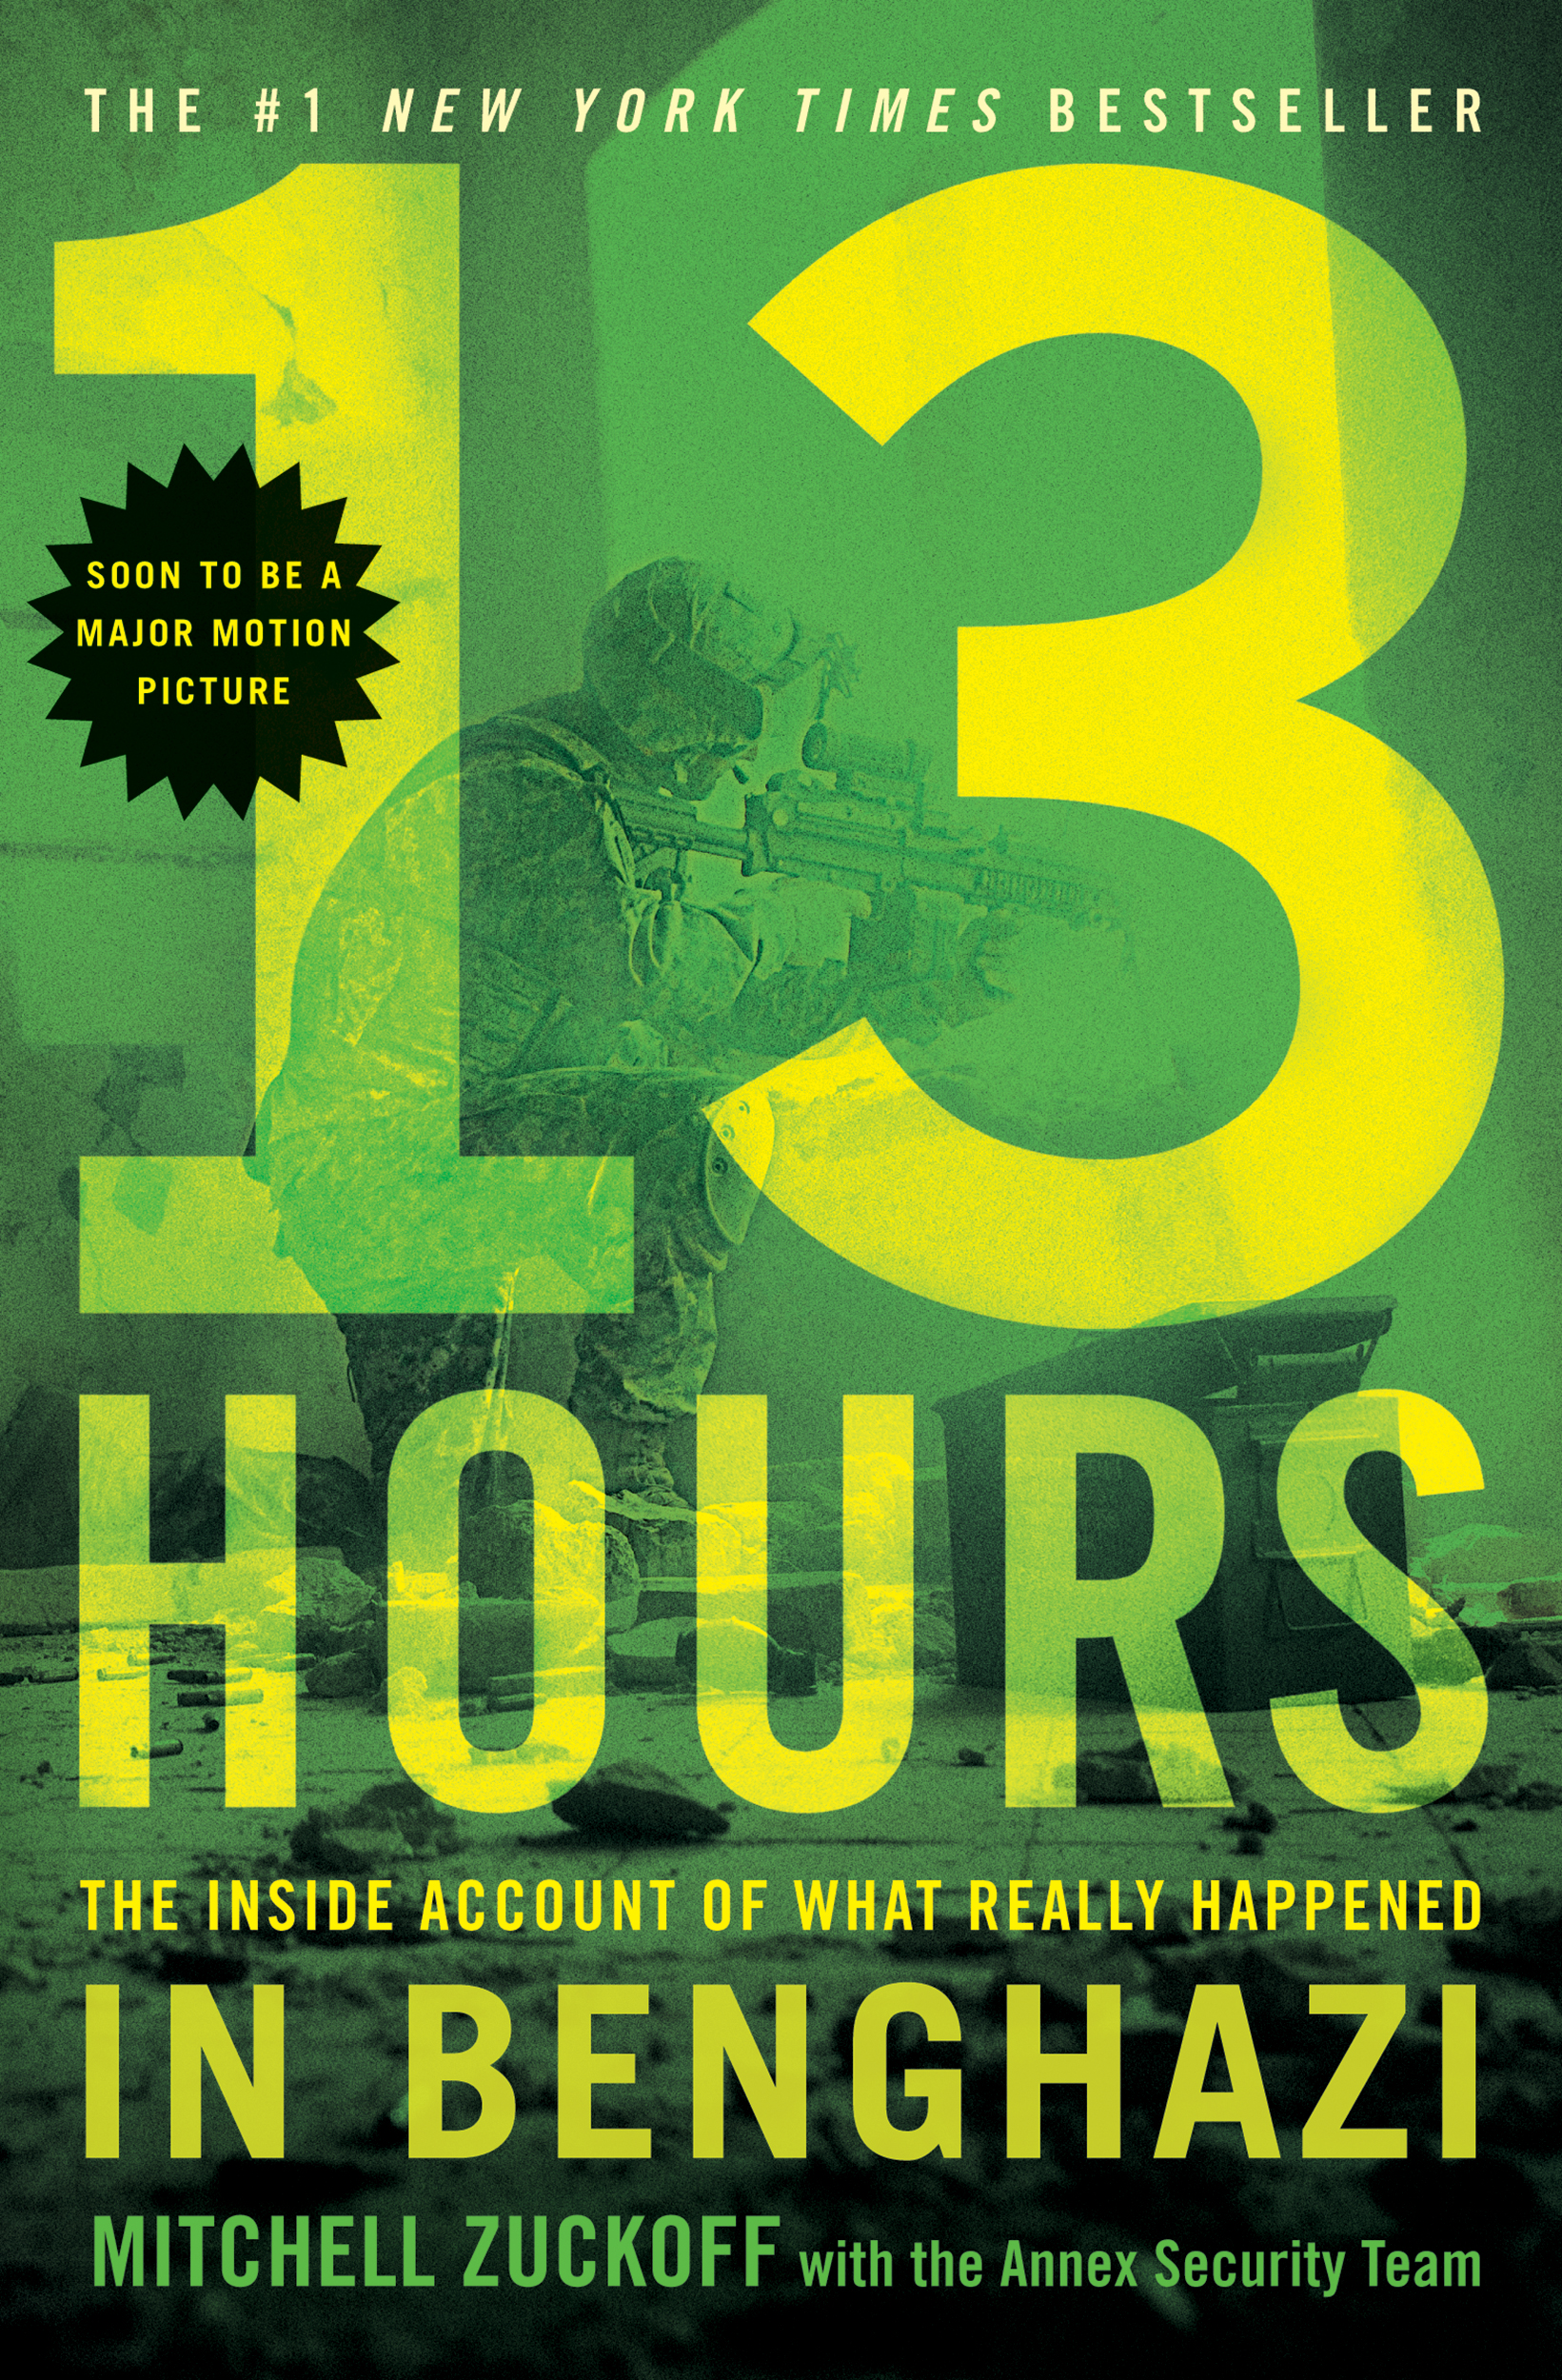 13 Hours The Inside Account of What Really Happened In Benghazi